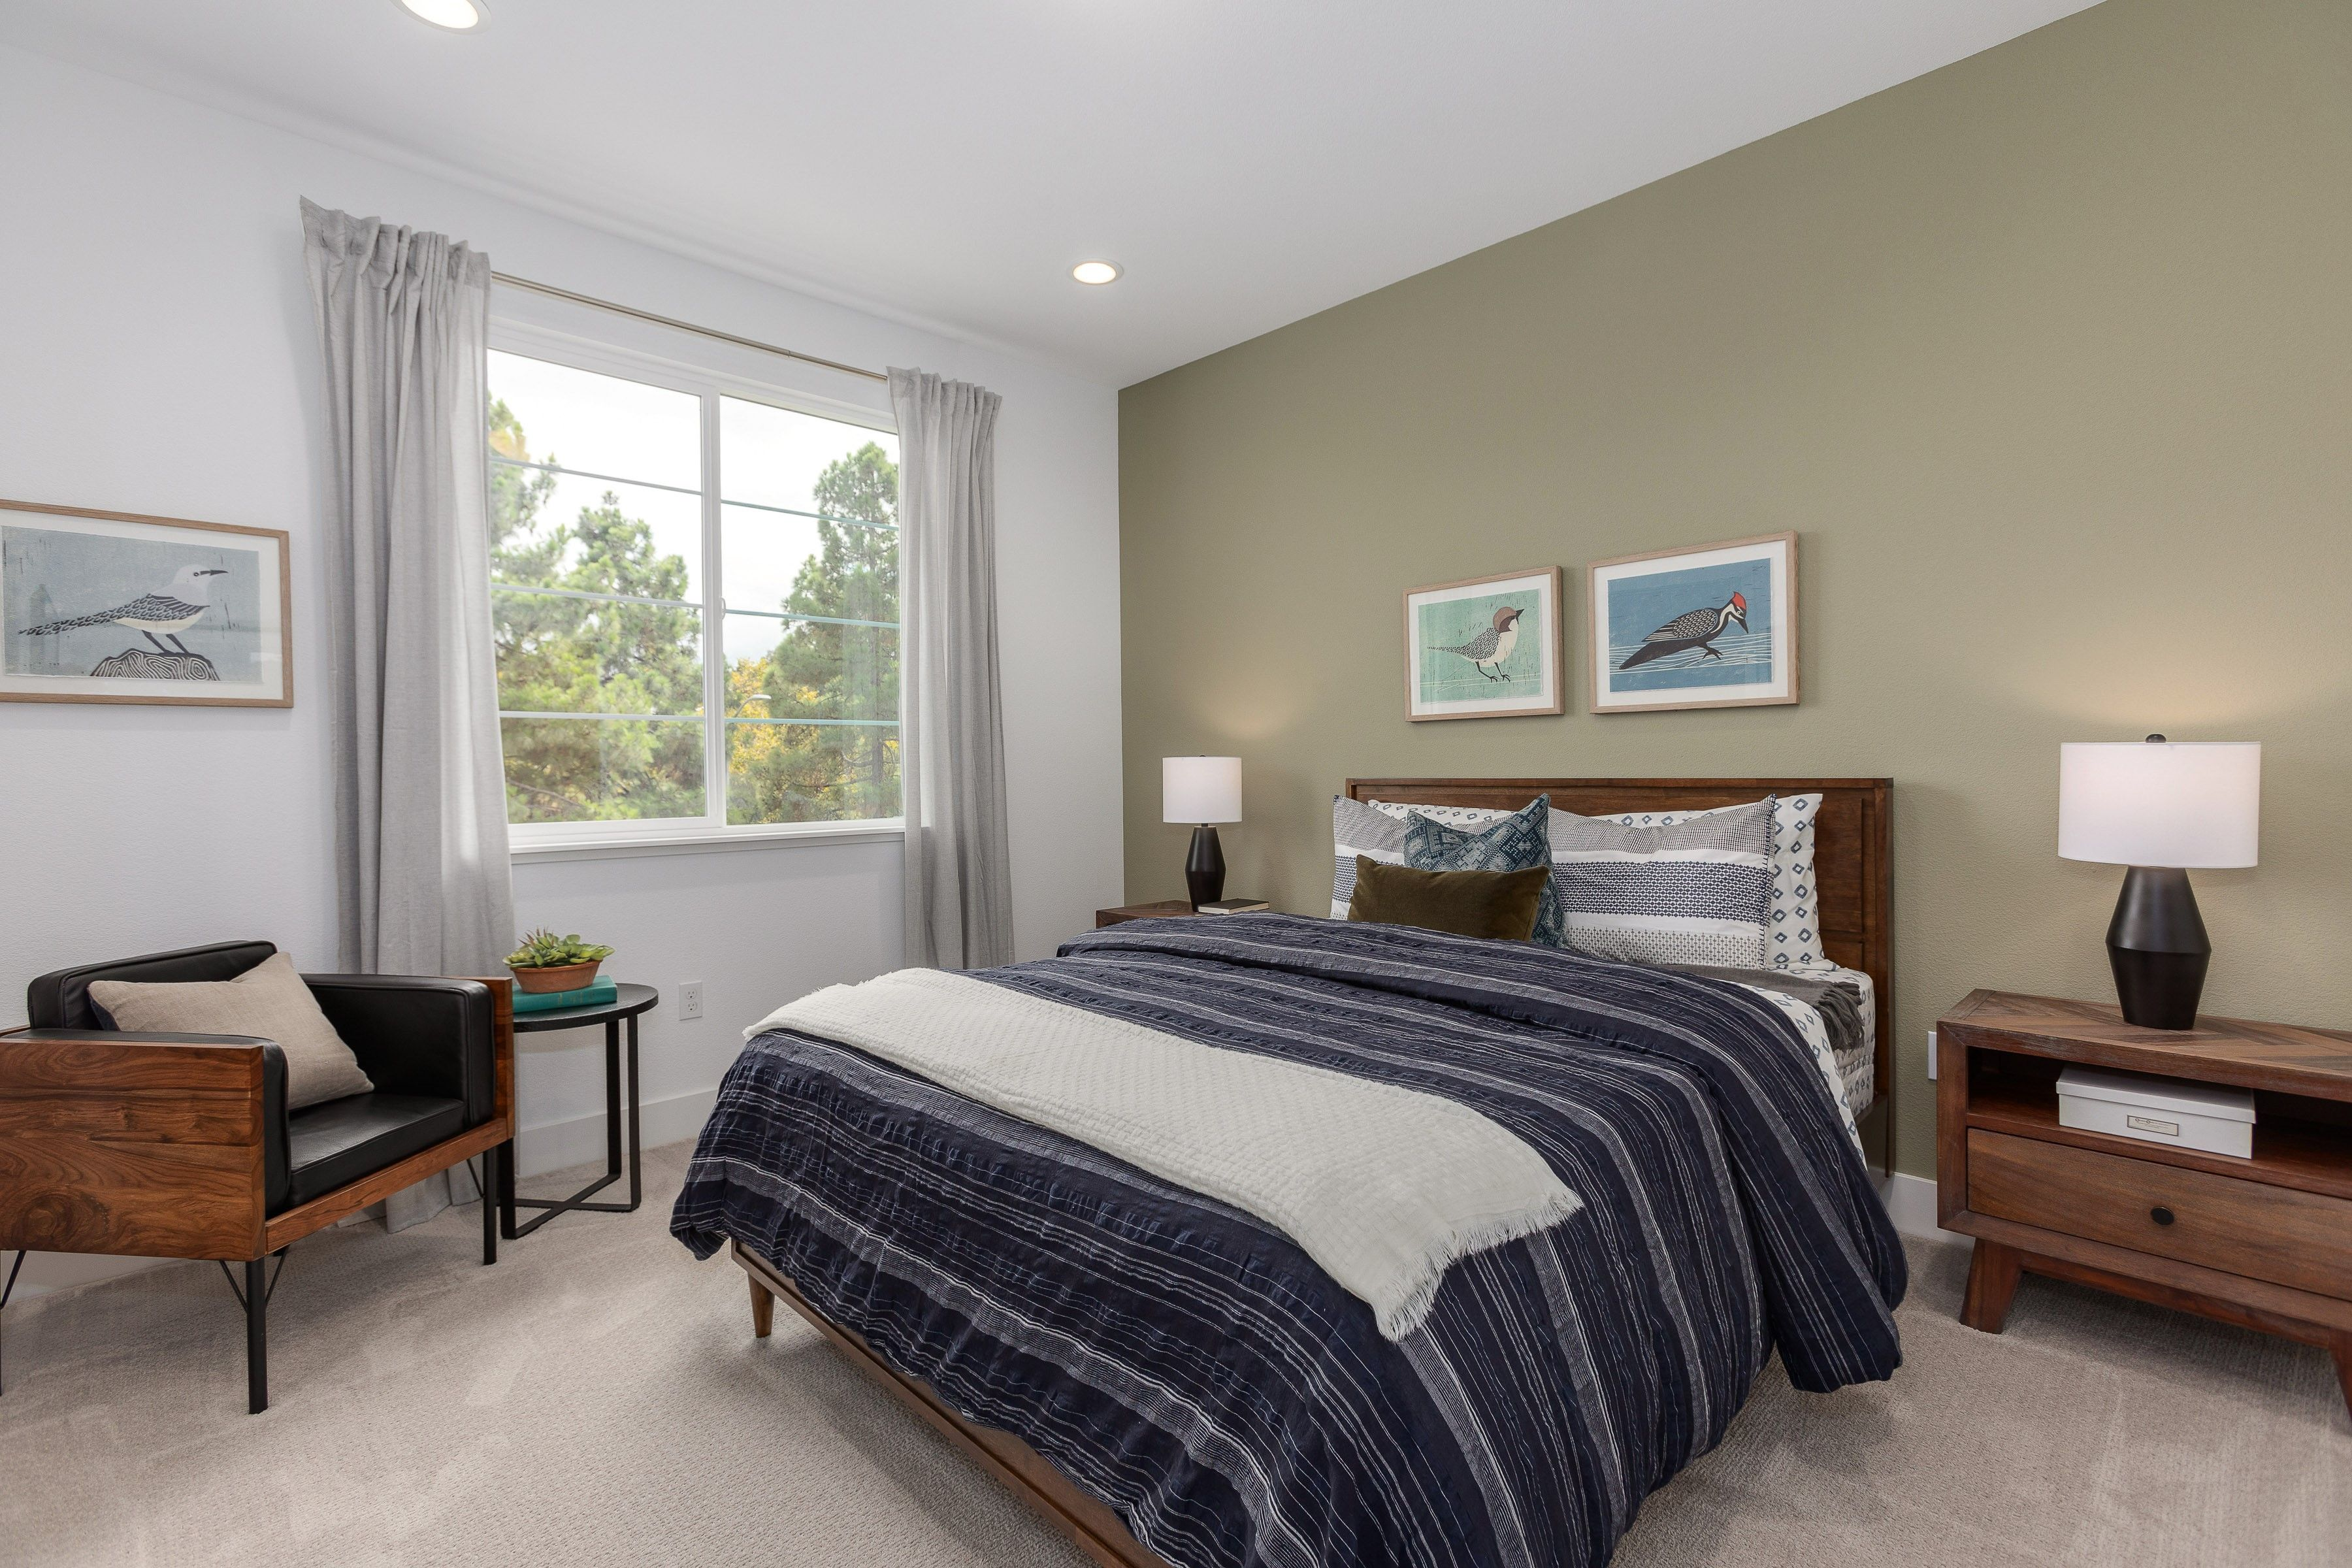 Bedroom featured in the Plan 2 WLH By Taylor Morrison in Oakland-Alameda, CA